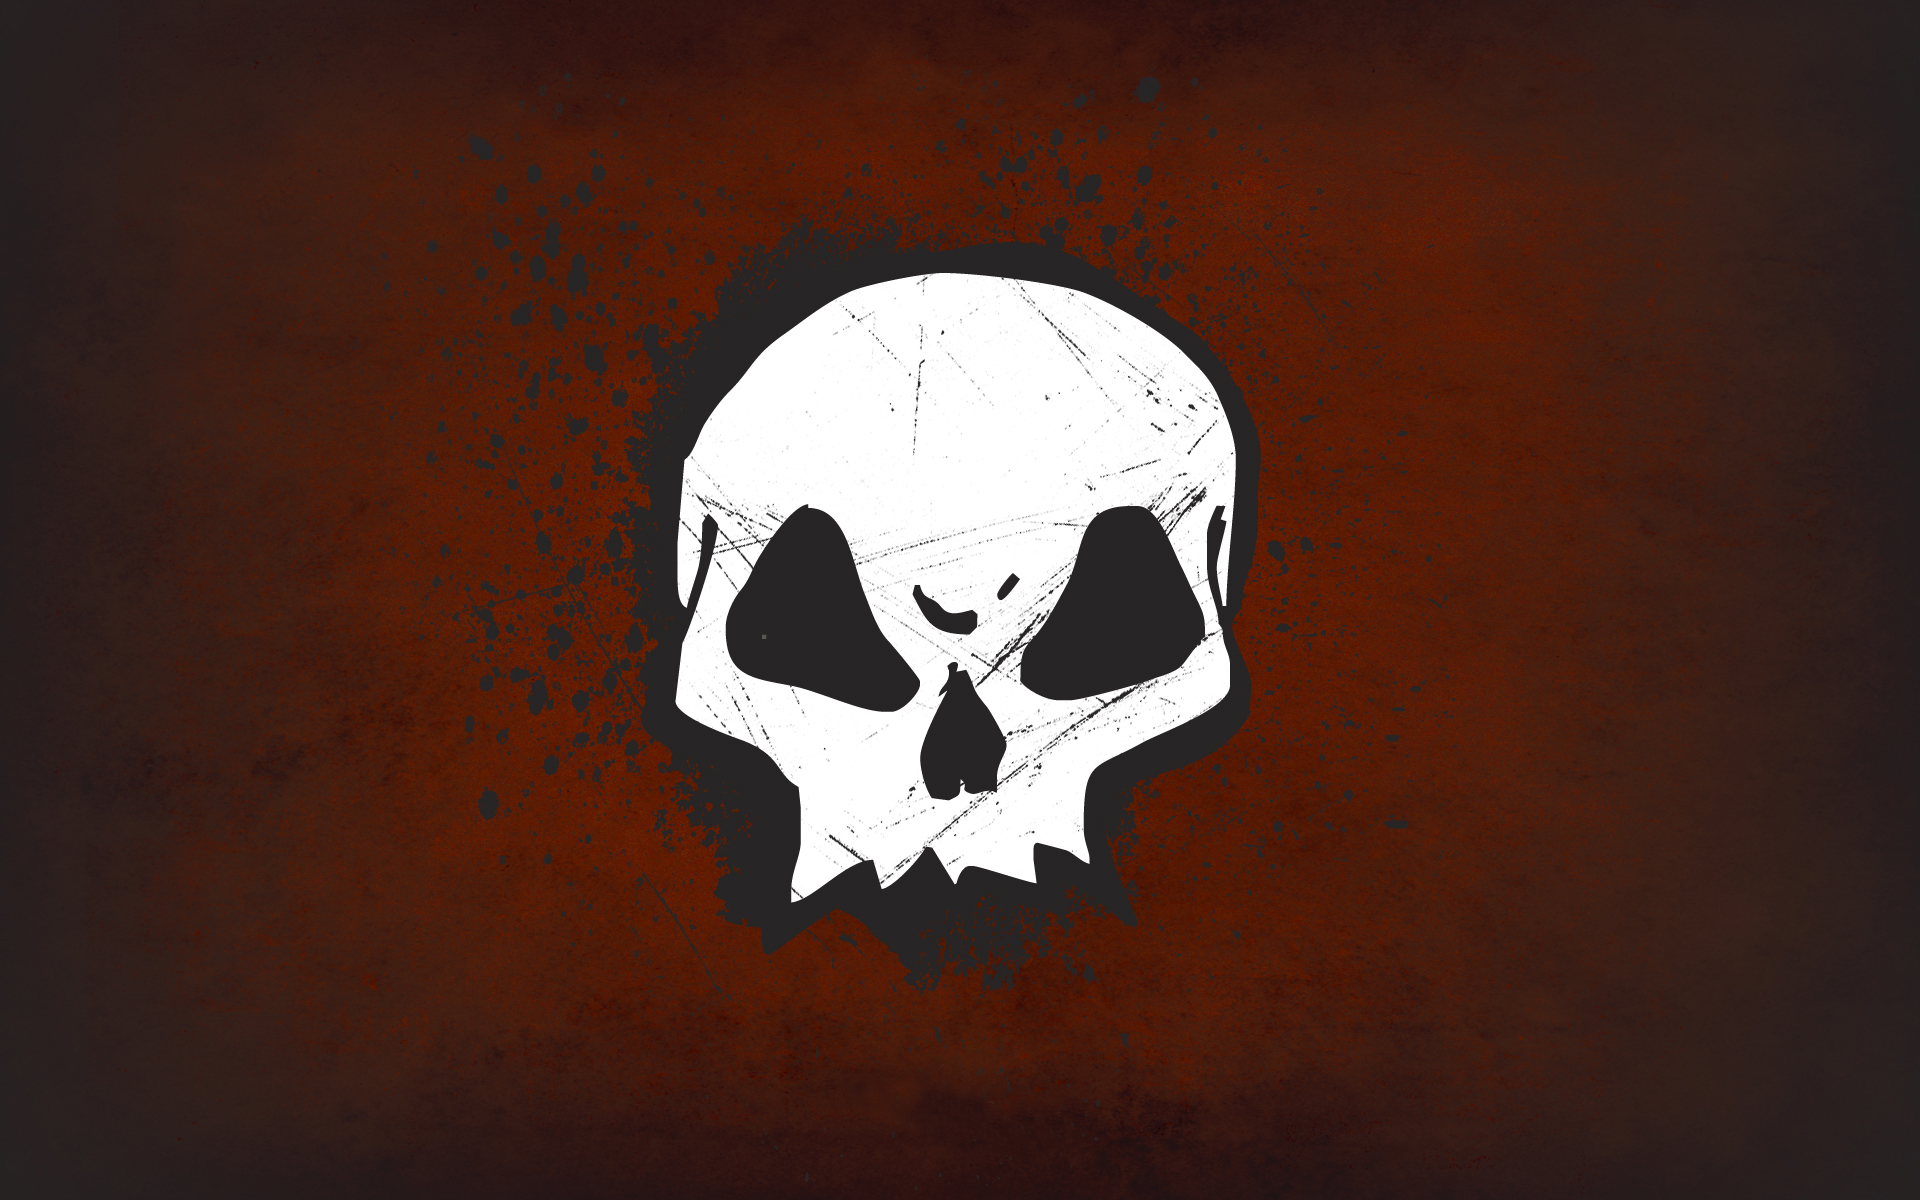 skull wallpaper for windows 7 - photo #6